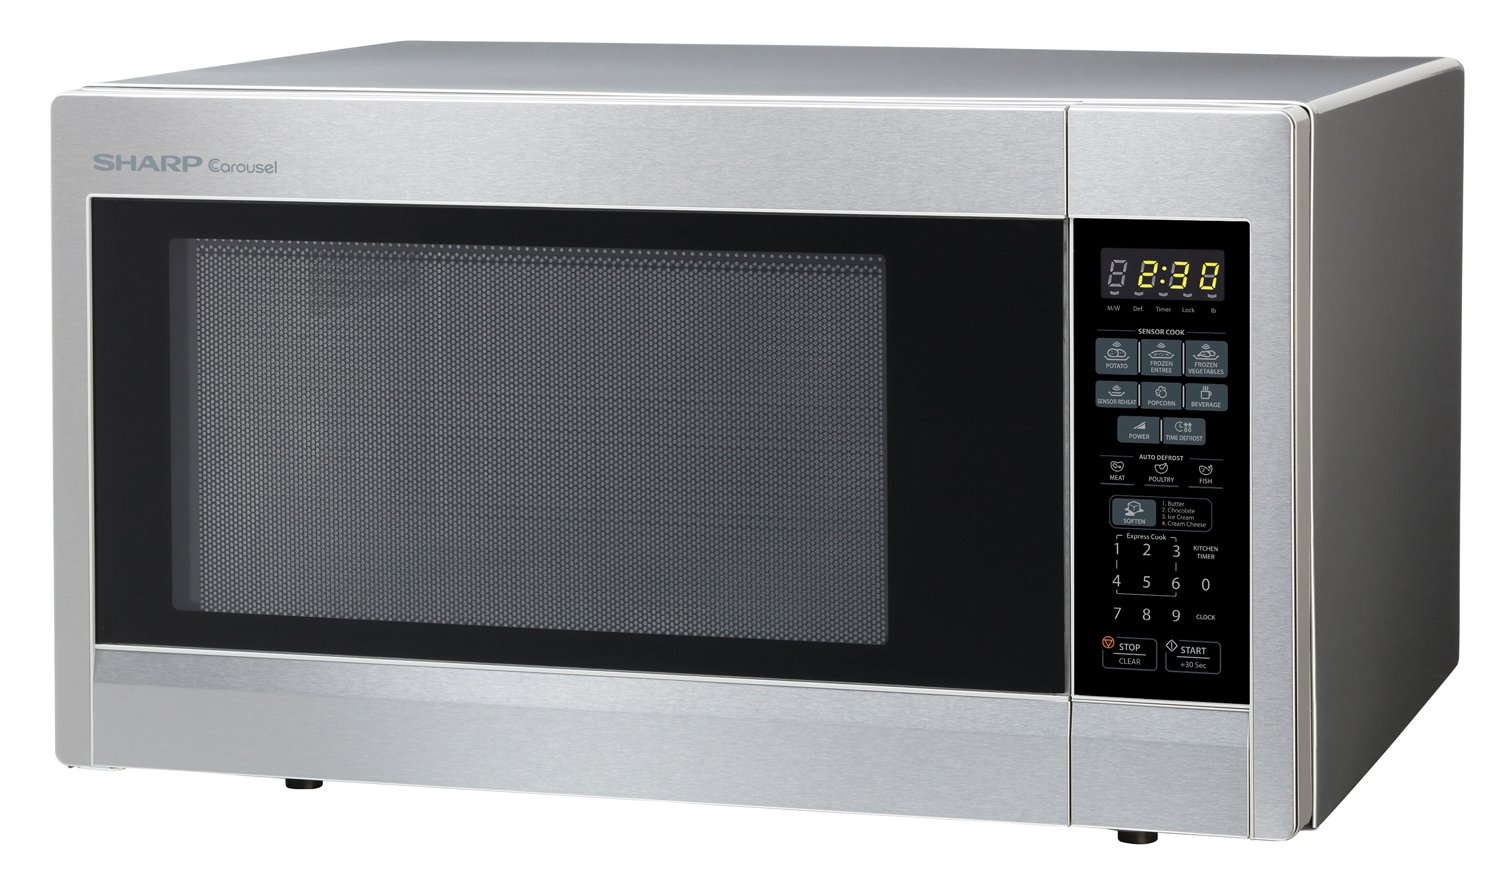 Sharp Countertop Microwave Oven Zr551zs 1 8 Cu Ft 1100w